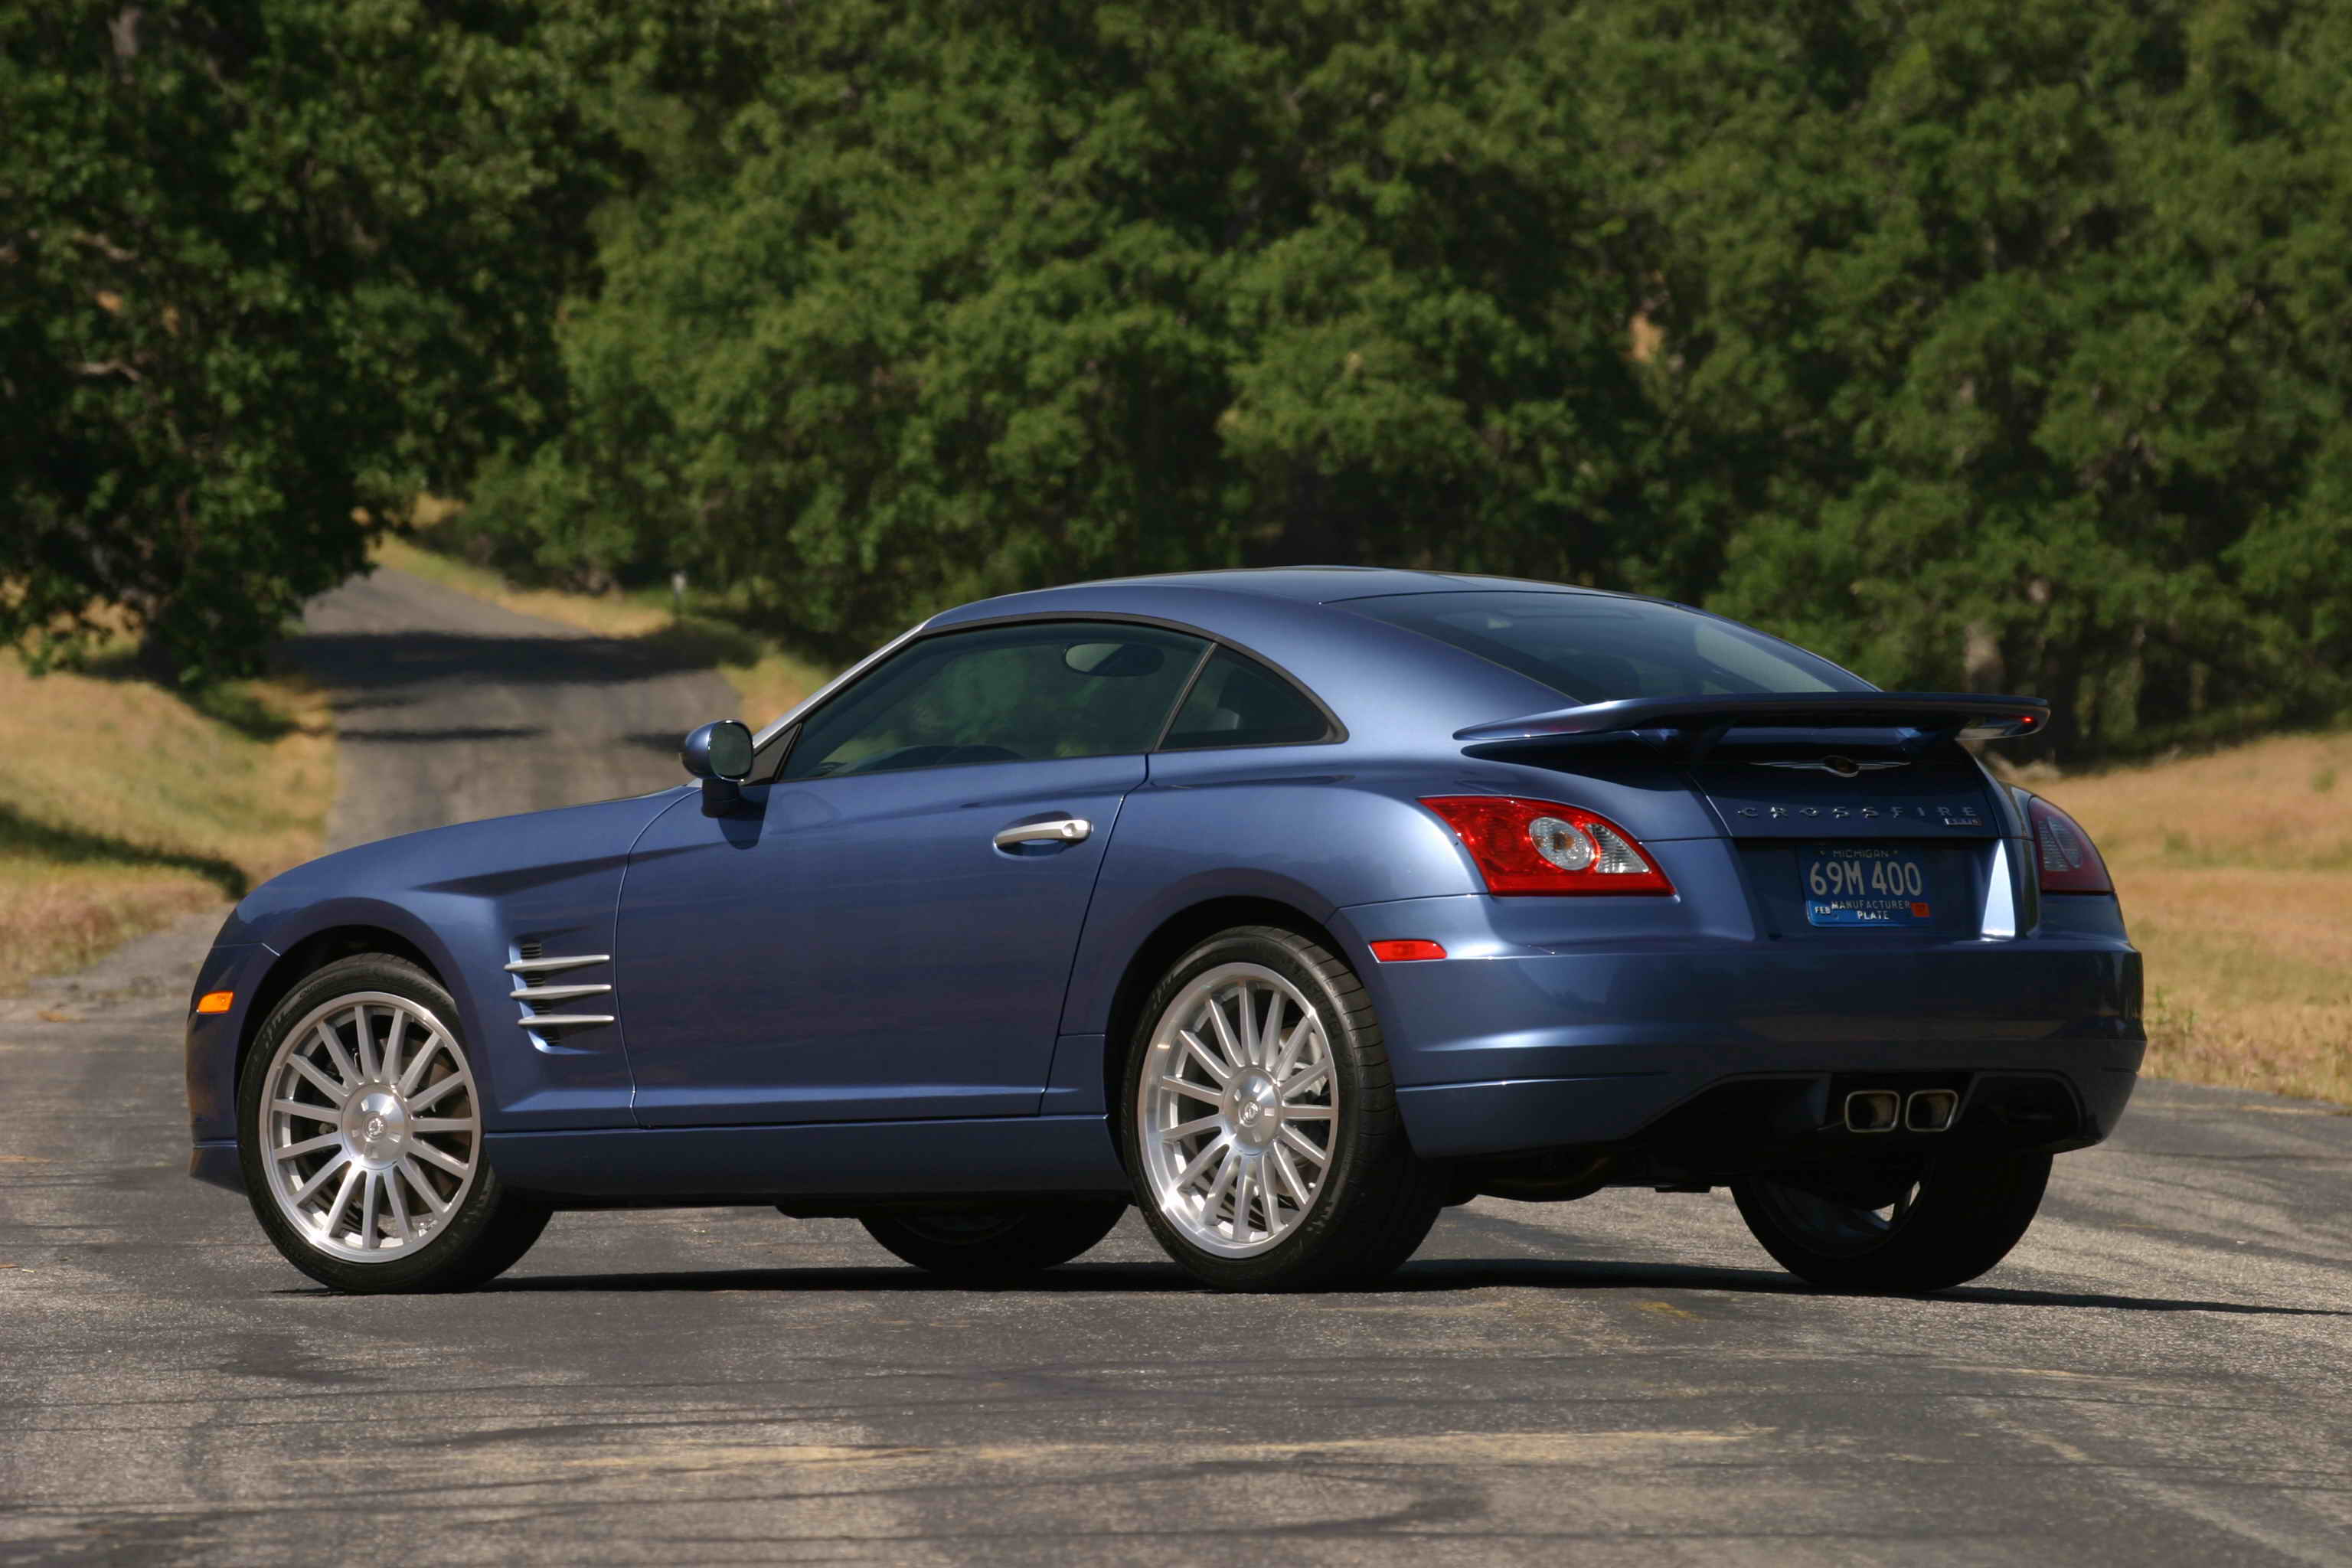 2005 chrysler crossfire srt 6 gallery 108559 top speed. Black Bedroom Furniture Sets. Home Design Ideas